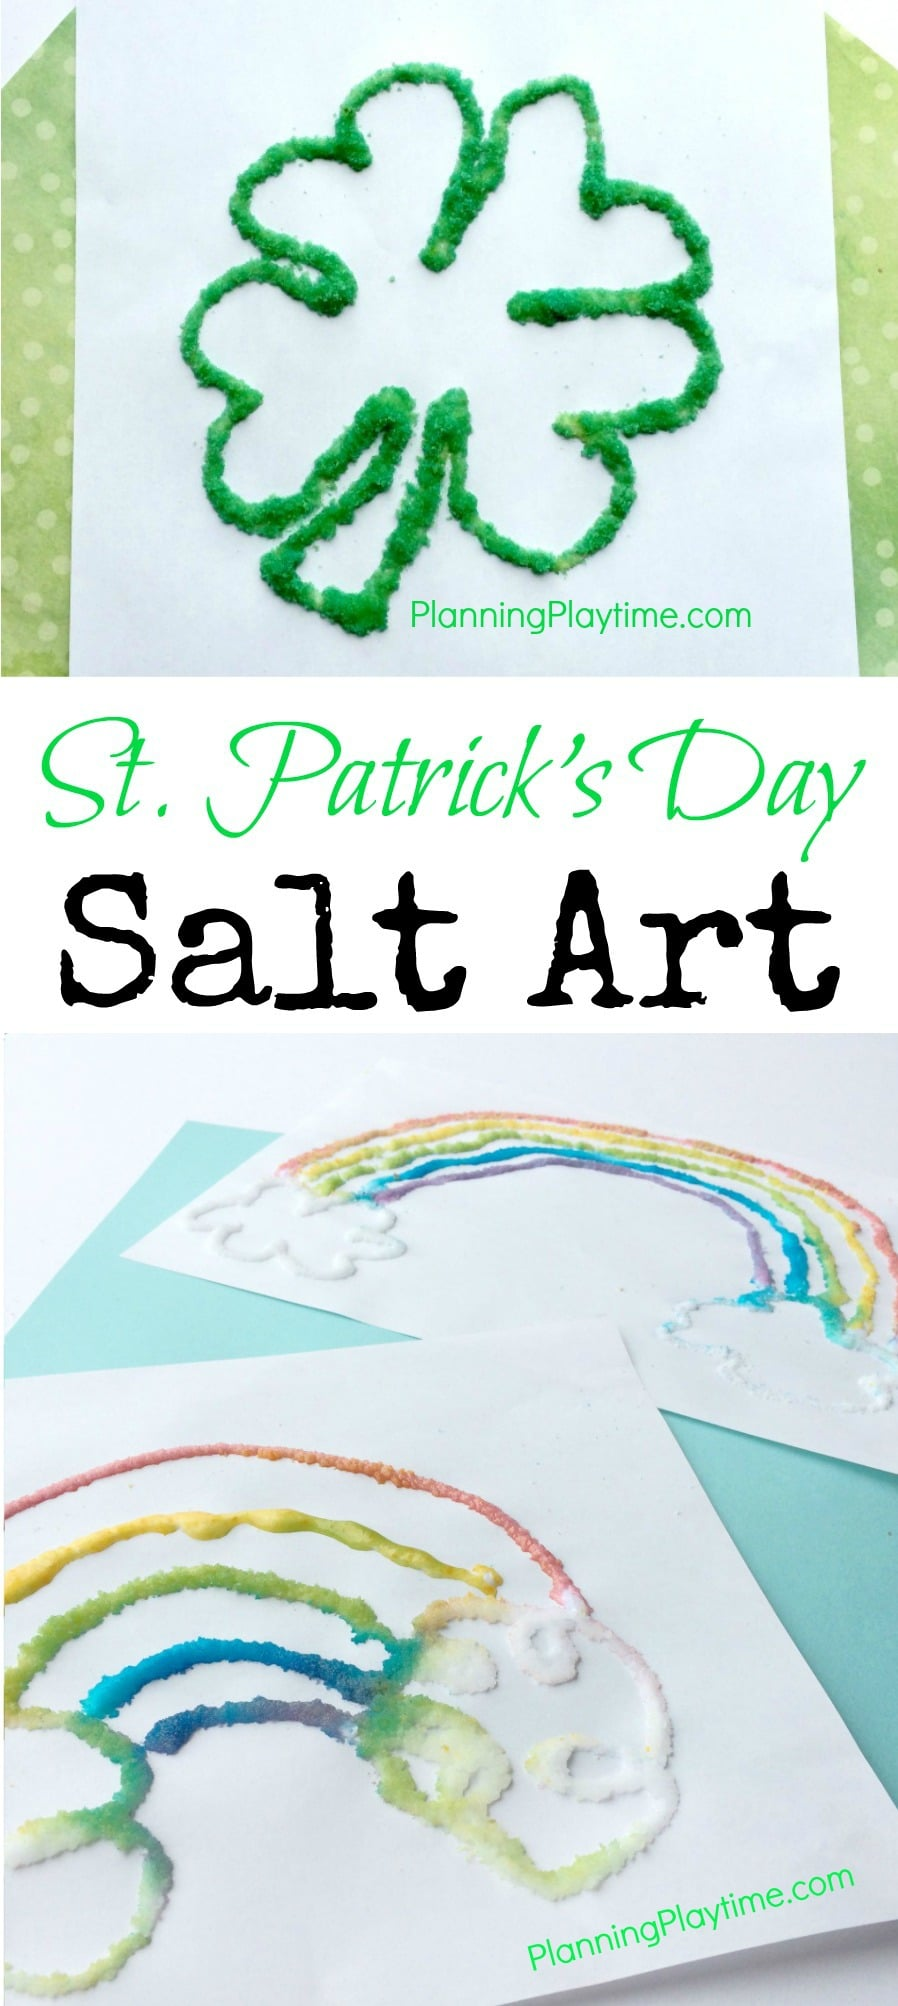 St. Patrick's Day Salt Art For kids